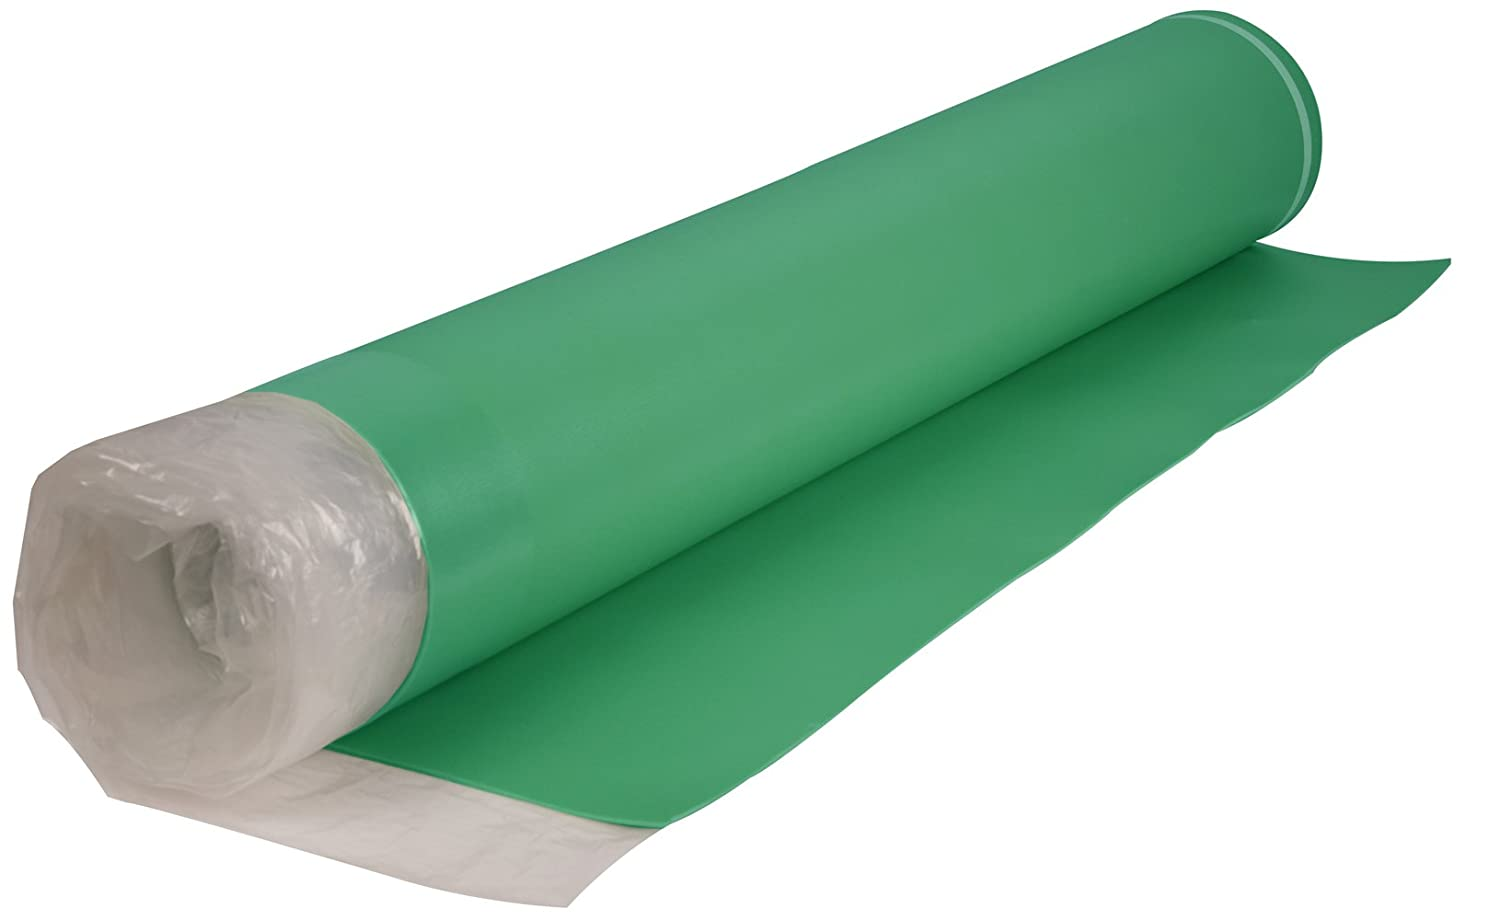 Roberts 70-180 Quiet Cushion Premium Acoustical Underlayment